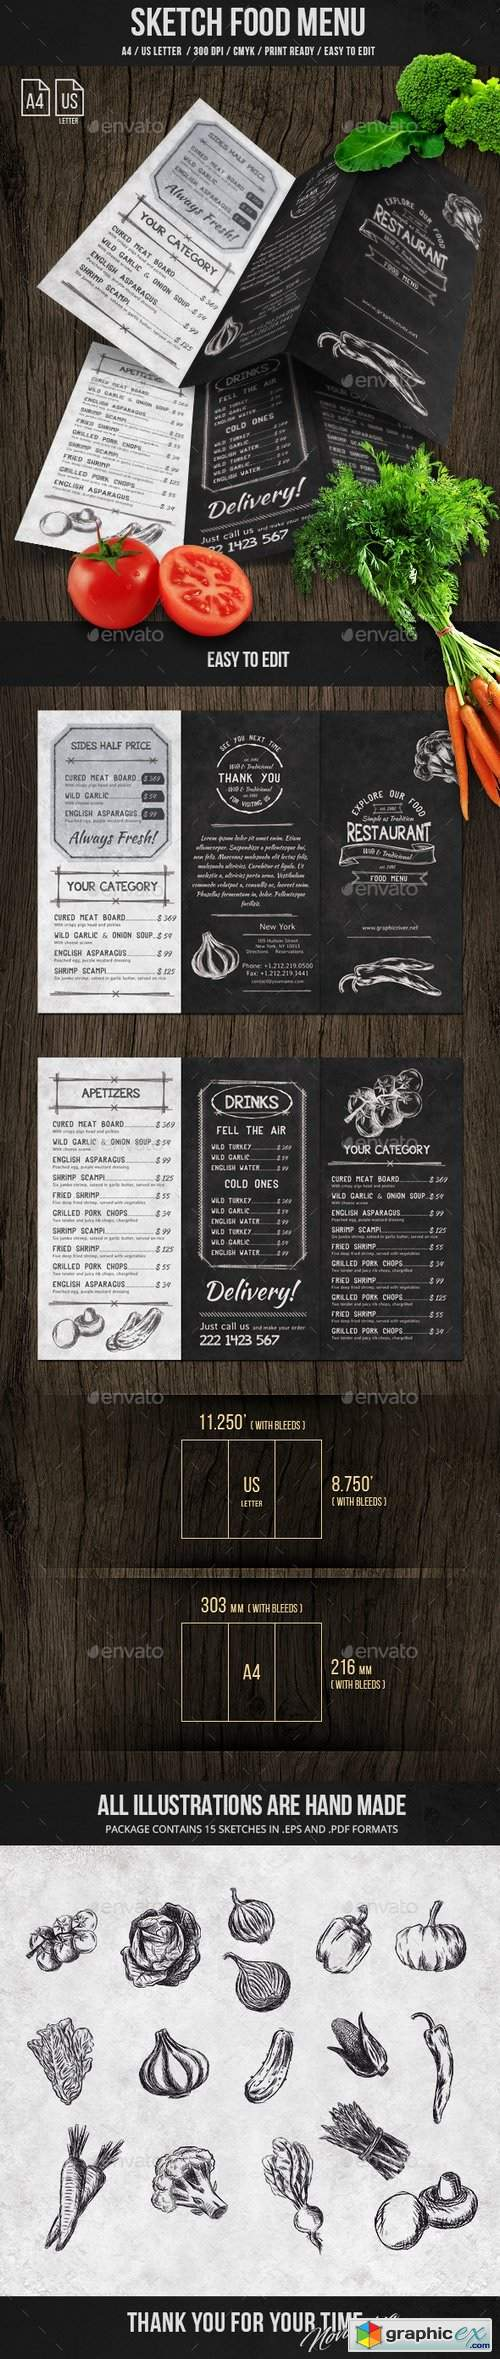 Sketch Trifold Food Menu A4 and US Letter